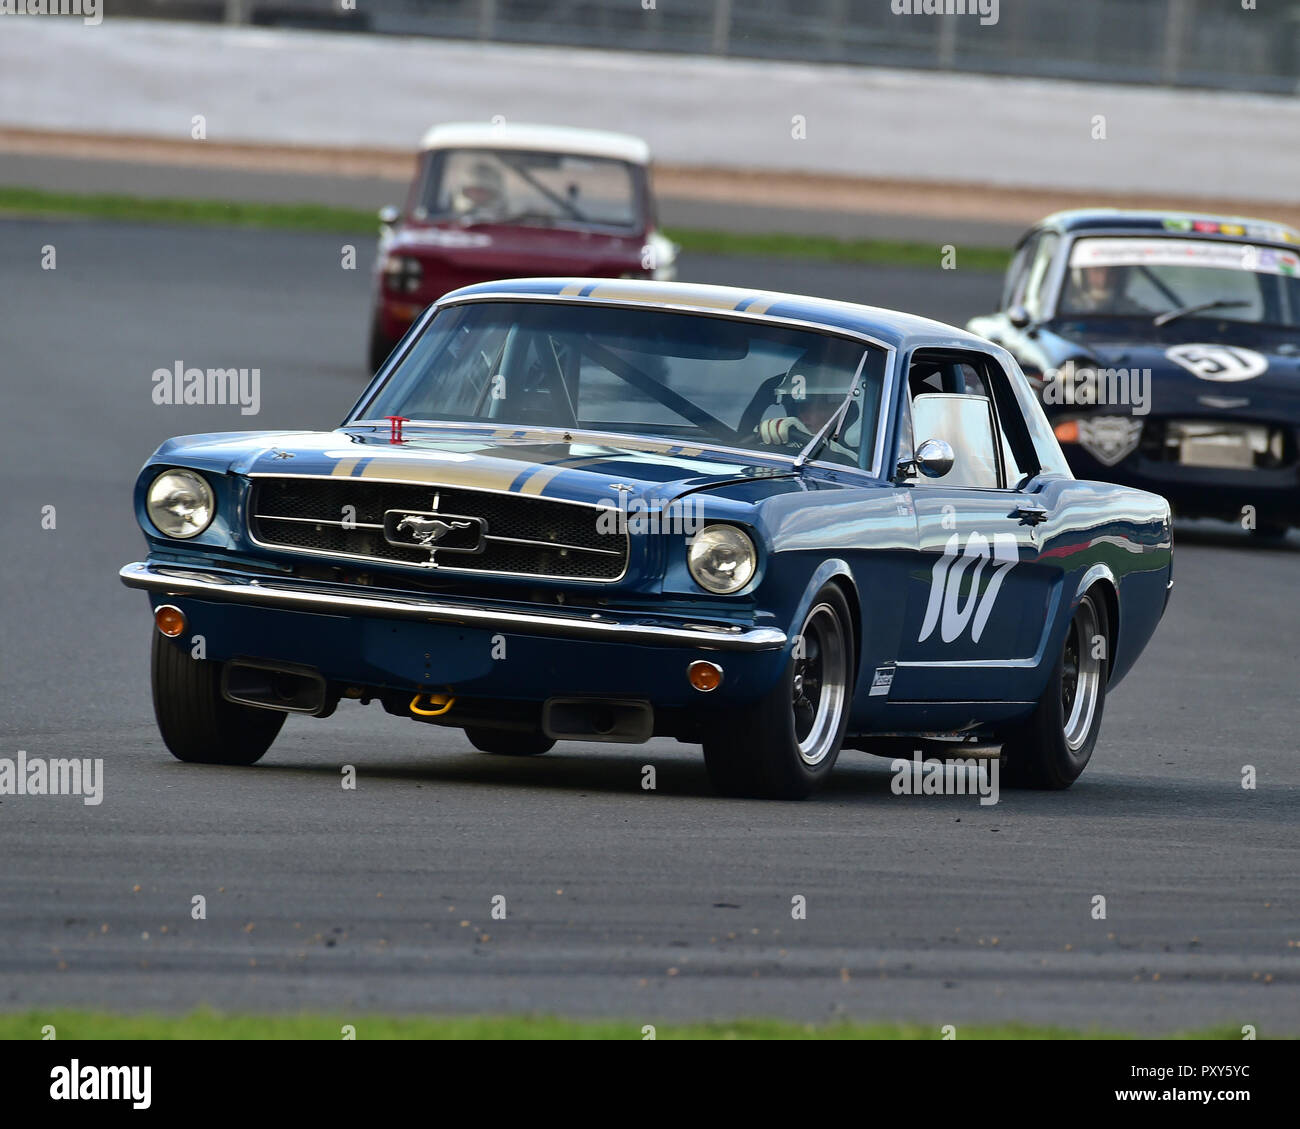 Neil Glover, Ford Mustang, HSCC, HRSR, Historic Touring Cars, Silverstone Finals Historic Race Meeting, Silverstone, October 2018, cars, Classic Racin - Stock Image